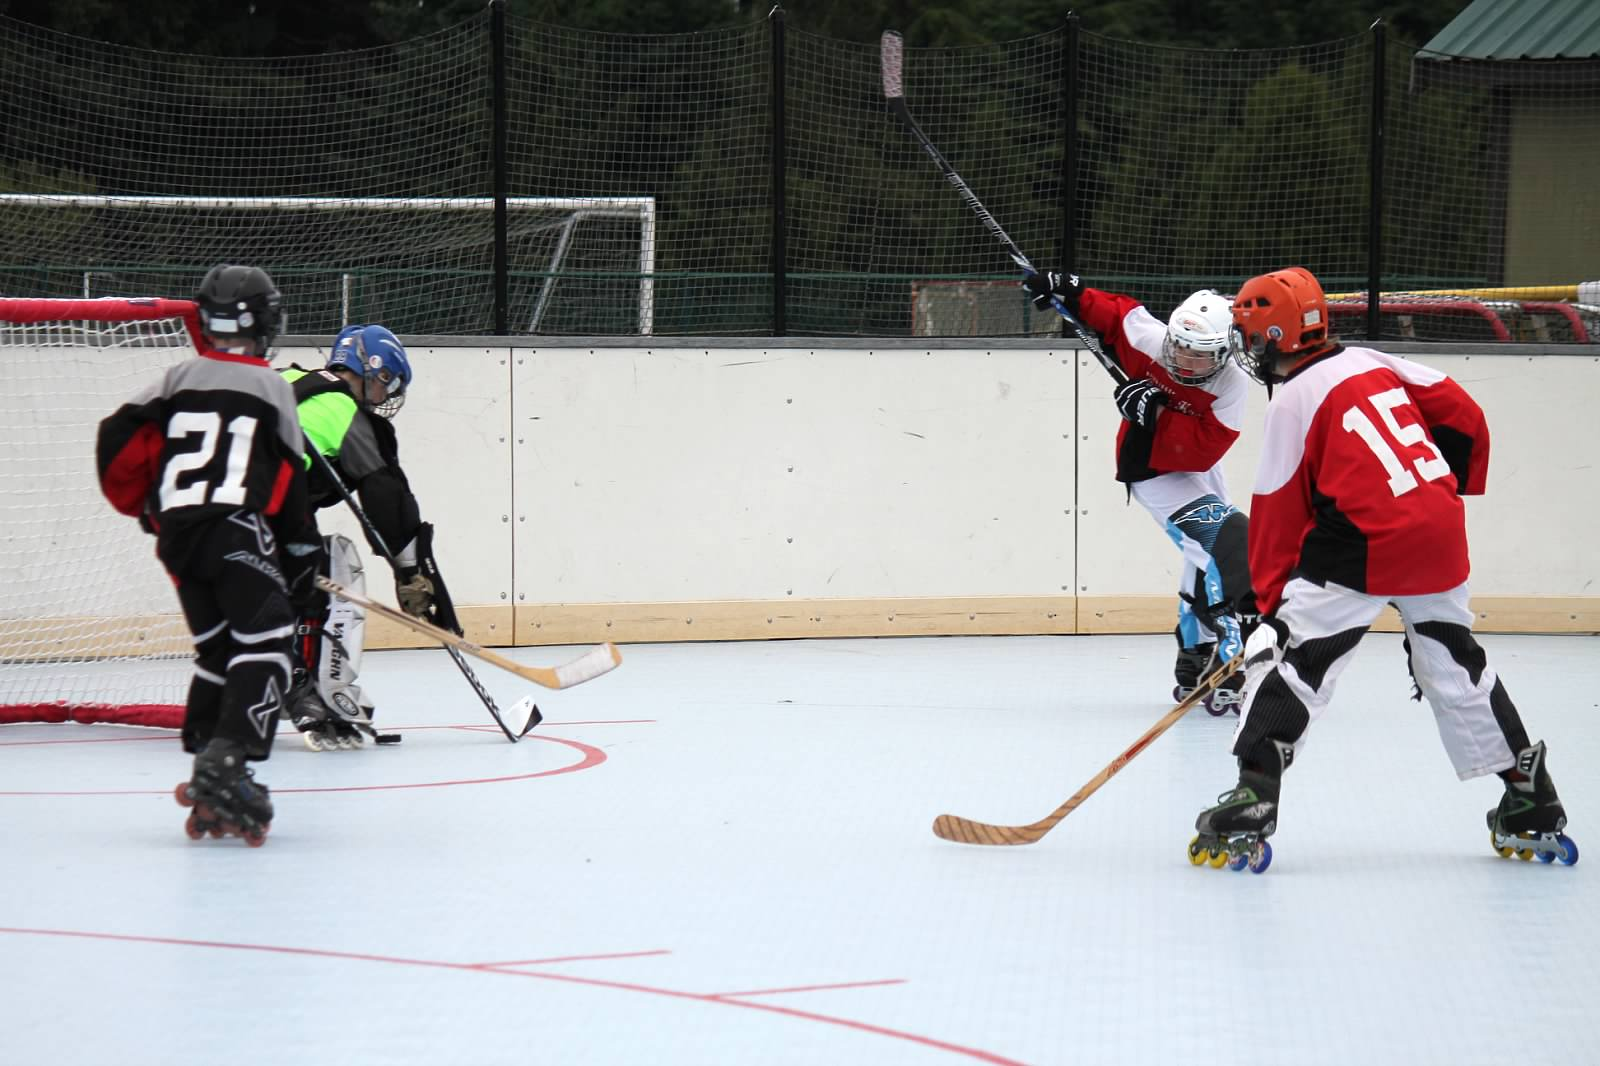 Some serious backhand here! Is that high sticking if it's a back hand? This hockey mom does NOT know much still!